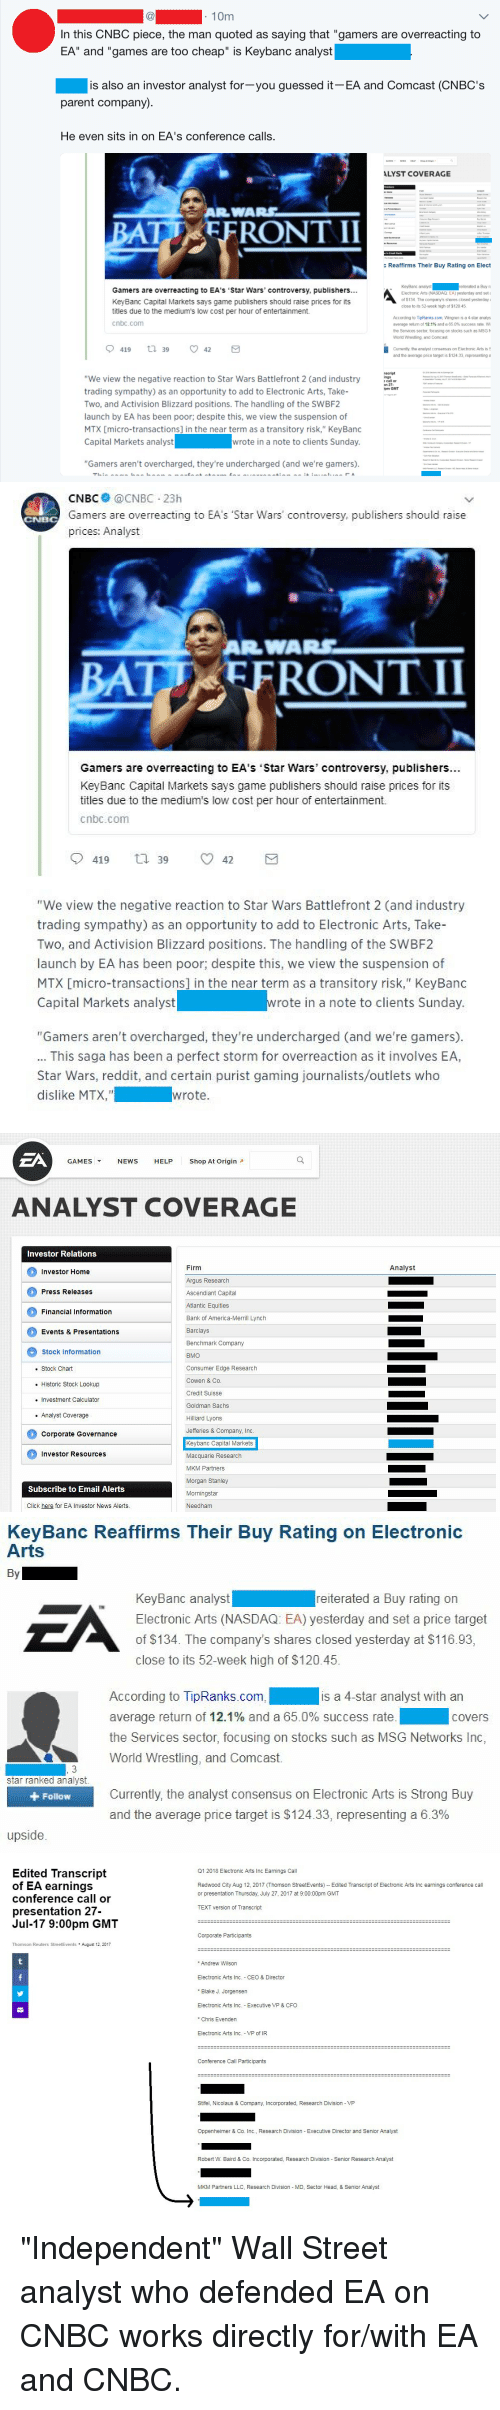 "America, Click, and Head: 10m  In this CNBC piece, the man quoted as saying that ""gamers are overreacting to  EA"" and ""games are too cheap"" is Keybanc analyst  is also an investor analyst for-you guessed it EA and Comcast (CNBC's  parent company)  He even sits in on EA's conference calls.  LYST COVERAGE  c Reaffirms Their Buy Rating on Elect  KeyBanc analyst  Electronic Arts (NASDAQ. EA) yesterday and set  of $134. The company's shares closed yesterday  close to its 52-week high of $12045  eiterated a Buy r  Gamers are overreacting to EA's 'Star Wars' controversy, publishers...  KeyBanc Capital Markets says game publishers should raise prices for its  titles due to the medium's low cost per hour of entertainment.  cnbc.com  According to TipRanks.com, Wingren is a 4-star analys  average return of 12.1% and 65 0% success rate Wi  the Services sector, focusing on stocks such as MSG  World Wrestling, and Comcast.  Currently the analyst consensus on Electronic Arts is S  and the average price target is $124.33, representing a  script  ings  r call or  n 27  ""We view the negative reaction to Star Wars Battlefront 2 (and industry  trading sympathy) as an opportunity to add to Electronic Arts, Take-  Two, and Activision Blizzard positions. The handling of the SWBF2  launch by EA has been poor, despite this, we view the suspension of  MTX micro-transactions] in the near term as a transitory risk."" KeyBanc  Capital Markets analyst  pm GMT  wrote in a note to clients Sunday.  ""Gamers aren't overcharged, they're undercharged (and we're gamers)   CNBC @CNBC 23h  Gamers are overreacting to EA's Star Wars' controversy, publishers should raise  prices: Analyst  BAT EFRONT II  Gamers are overreacting to EA's Star Wars' controversy, publishers...  KeyBanc Capital Markets says game publishers should raise prices for its  titles due to the medium's low cost per hour of entertainment.  cnbc.conm  9419 39 ㅇ 42  ""We view the negative reaction to Star Wars Battlefront 2 (and industry  trading sympathy) as an opportunity to add to Electronic Arts, Take-  Two, and Activision Blizzard positions. The handling of the SWBF2  launch by EA has been poor; despite this, we view the suspension of  MTX [micro-transactionsl in the near term as a transitory risk,"" KeyBanc  Capital Markets analyst  wrote in a note to clients Sunday.  ""Gamers aren't overcharged, they're undercharged (and we're gamers).  This saga has been a perfect storm for overreaction as it involves EA,  Star Wars, reddit, and certain purist gaming journalists/outlets who  dislike MTX,  wrote   ZA  GAMES ▼  NEWS  HELP  Shop At Origin  ANALYST COVERAGE  Investor RelationS  Firm  Argus Research  Ascendiant Capital  Atlantic Equities  Bank of America-Merrill Lynclh  Barclays  Benchmark Company  BMO  Consumer Edge Research  Cowen & Co.  Credit Suisse  Goldman Sachs  Hilliard Lyons  Jefferies & Company, Inc.  Keybanc Capital Markets  Macquarie Research  MKM Partners  Morgan Stanley  Morningstar  Needham  Analyst  Investor Home  Press Releases  Financial Information  Events & Presentations  Stock Information  . Stock Chart  . Historic Stock Lookup  . Investment Calculator  . Analyst Coverage  Corporate Governance  Investor Resources  Subscribe to Email Alerts  Click here for EA Investor News Alerts   KeyBanc Reaffirms Their Buy Rating on Electronic  Arts  By  EN  KeyBanc analystreiterated a Buy rating on  Electronic Arts (NASDAQ: EA) yesterday and set a price target  of $134. The company's shares closed yesterday at $116.93,  close to its 52-week high of $120.45  According to TipRanks.com  average return of 12.1% and a 65.0% success rate  the Services sector, focusing on stocks such as MSG Networks Inc,  World Wrestling, and Comcast.  is a 4-star analyst with an  covers  star ranked analyst  + Follow  Currently, the analyst consensus on Electronic Arts is Strong Buy  and the average price target is $124.33, representing a 6.3%  upside   Edited Transcript  of EA earnings  conference call or  presentation 27-  Jul-17 9:00pm GMT  Q1 2018 Electronic Arts Inc Earnings Call  Redwood City Aug 12, 2017 (Thomson StreetEvents) - Edited Transcript of Electronic Arts Inc earnings conference call  or presentation Thursday, July 27, 2017 at 9:00:00pm GMT  TEXT version of Transcript  Corporate Participants  Thomson Reuters StreetEvents August 12, 2017  *Andrew Wilson  Electronic Arts Inc. CEO & Director  Blake J. Jorgensen  Electronic Arts Inc. Executive VP & CFO  * Chris Evende  Electronic Arts Inc  VP of IR  Conference Call Participants  Stifel, Nicolaus & Company, Incorporated, Research Division VP  Oppenheimer & Co. Inc., Research Division - Executive Director and Senior Analyst  Robert W. Baird & Co. Incorporated, Research Division- Senior Research Analyst  MKM Partners LLC, Research Division MD, Sector Head, & Senior Analyst ""Independent"" Wall Street analyst who defended EA on CNBC works directly for/with EA and CNBC."